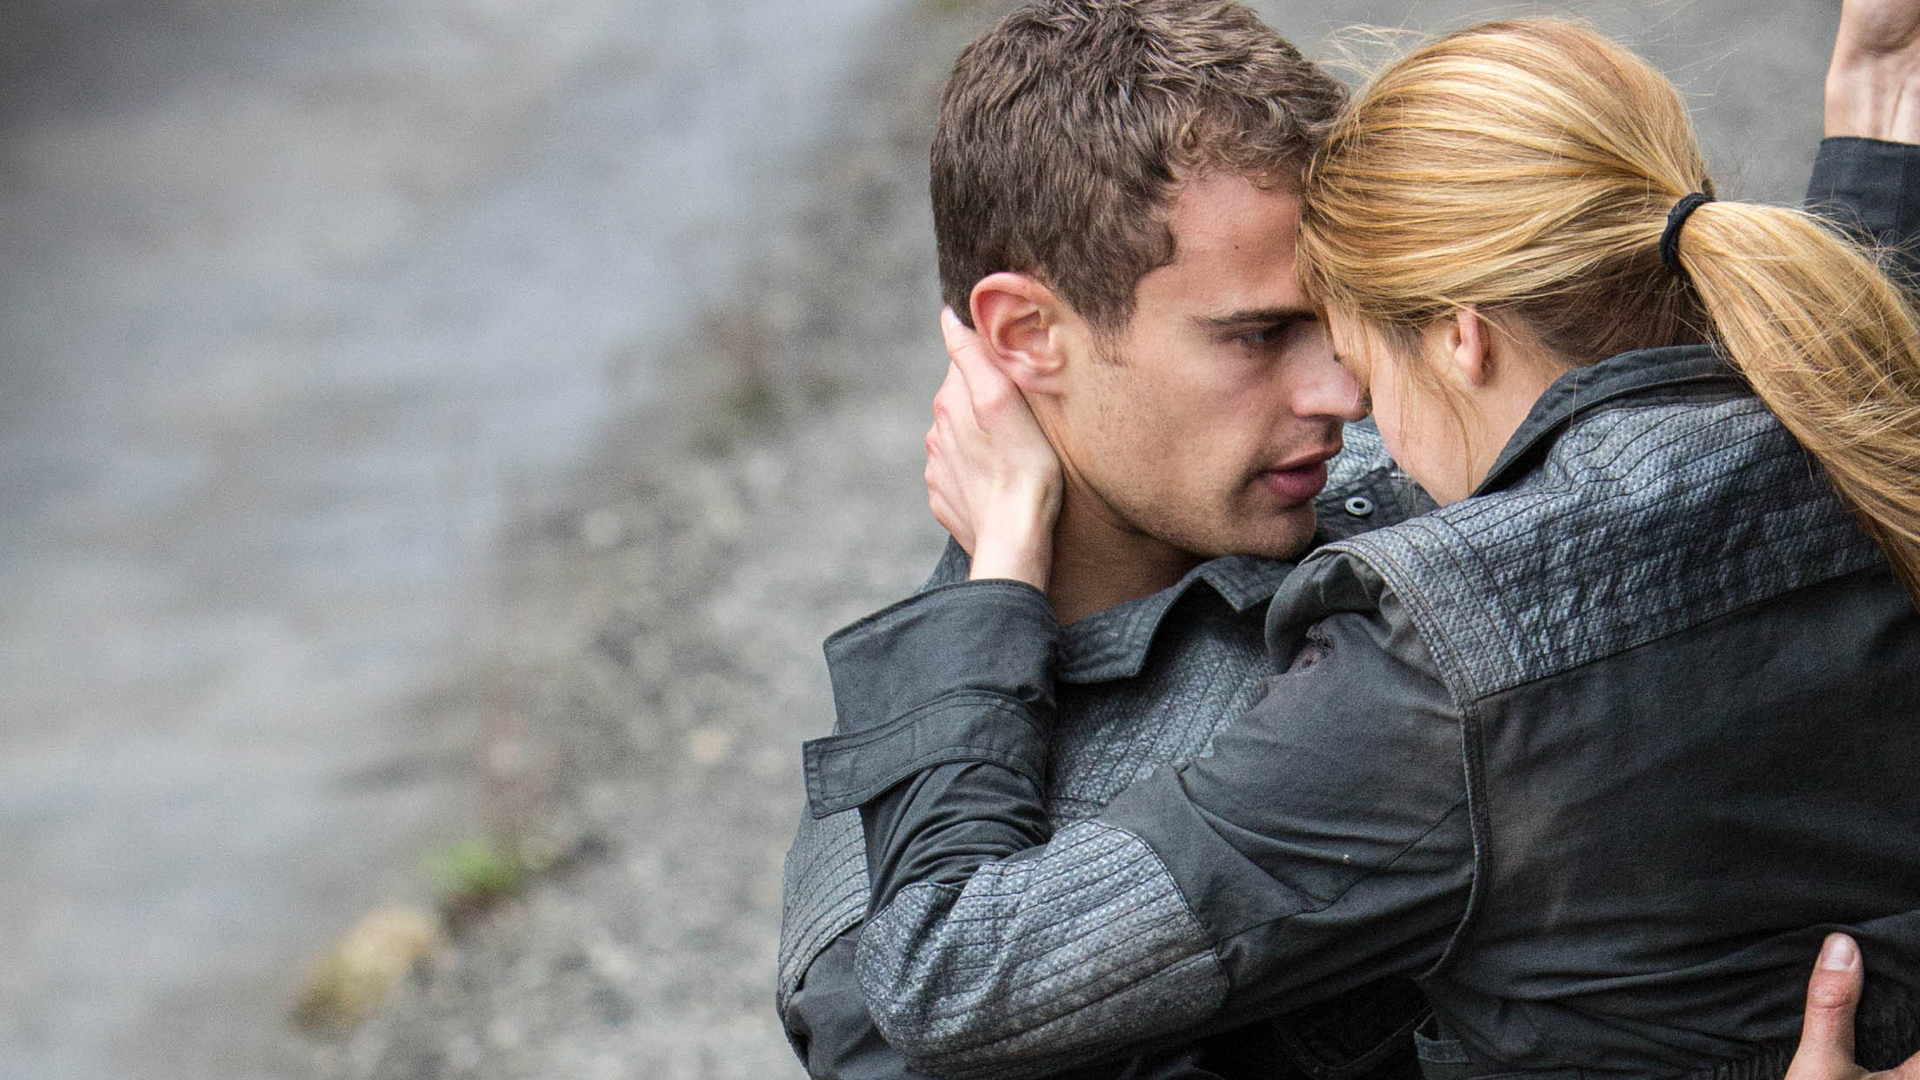 divergent movie tris and four - photo #8